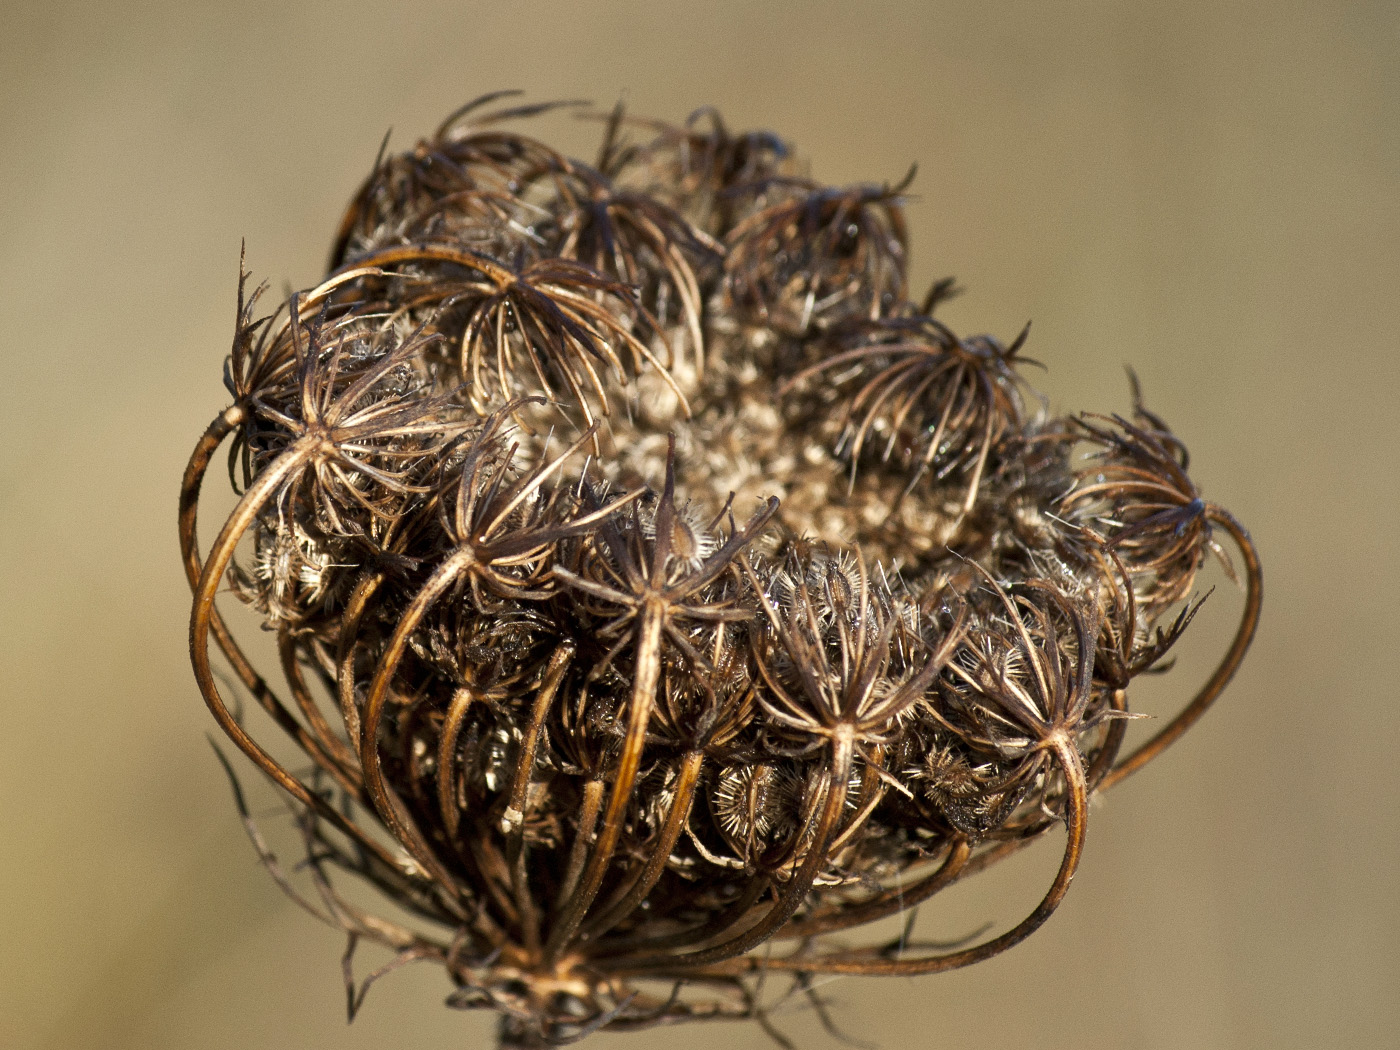 Queen Anne's lace seedhead, macro photography by Andrée Fredette